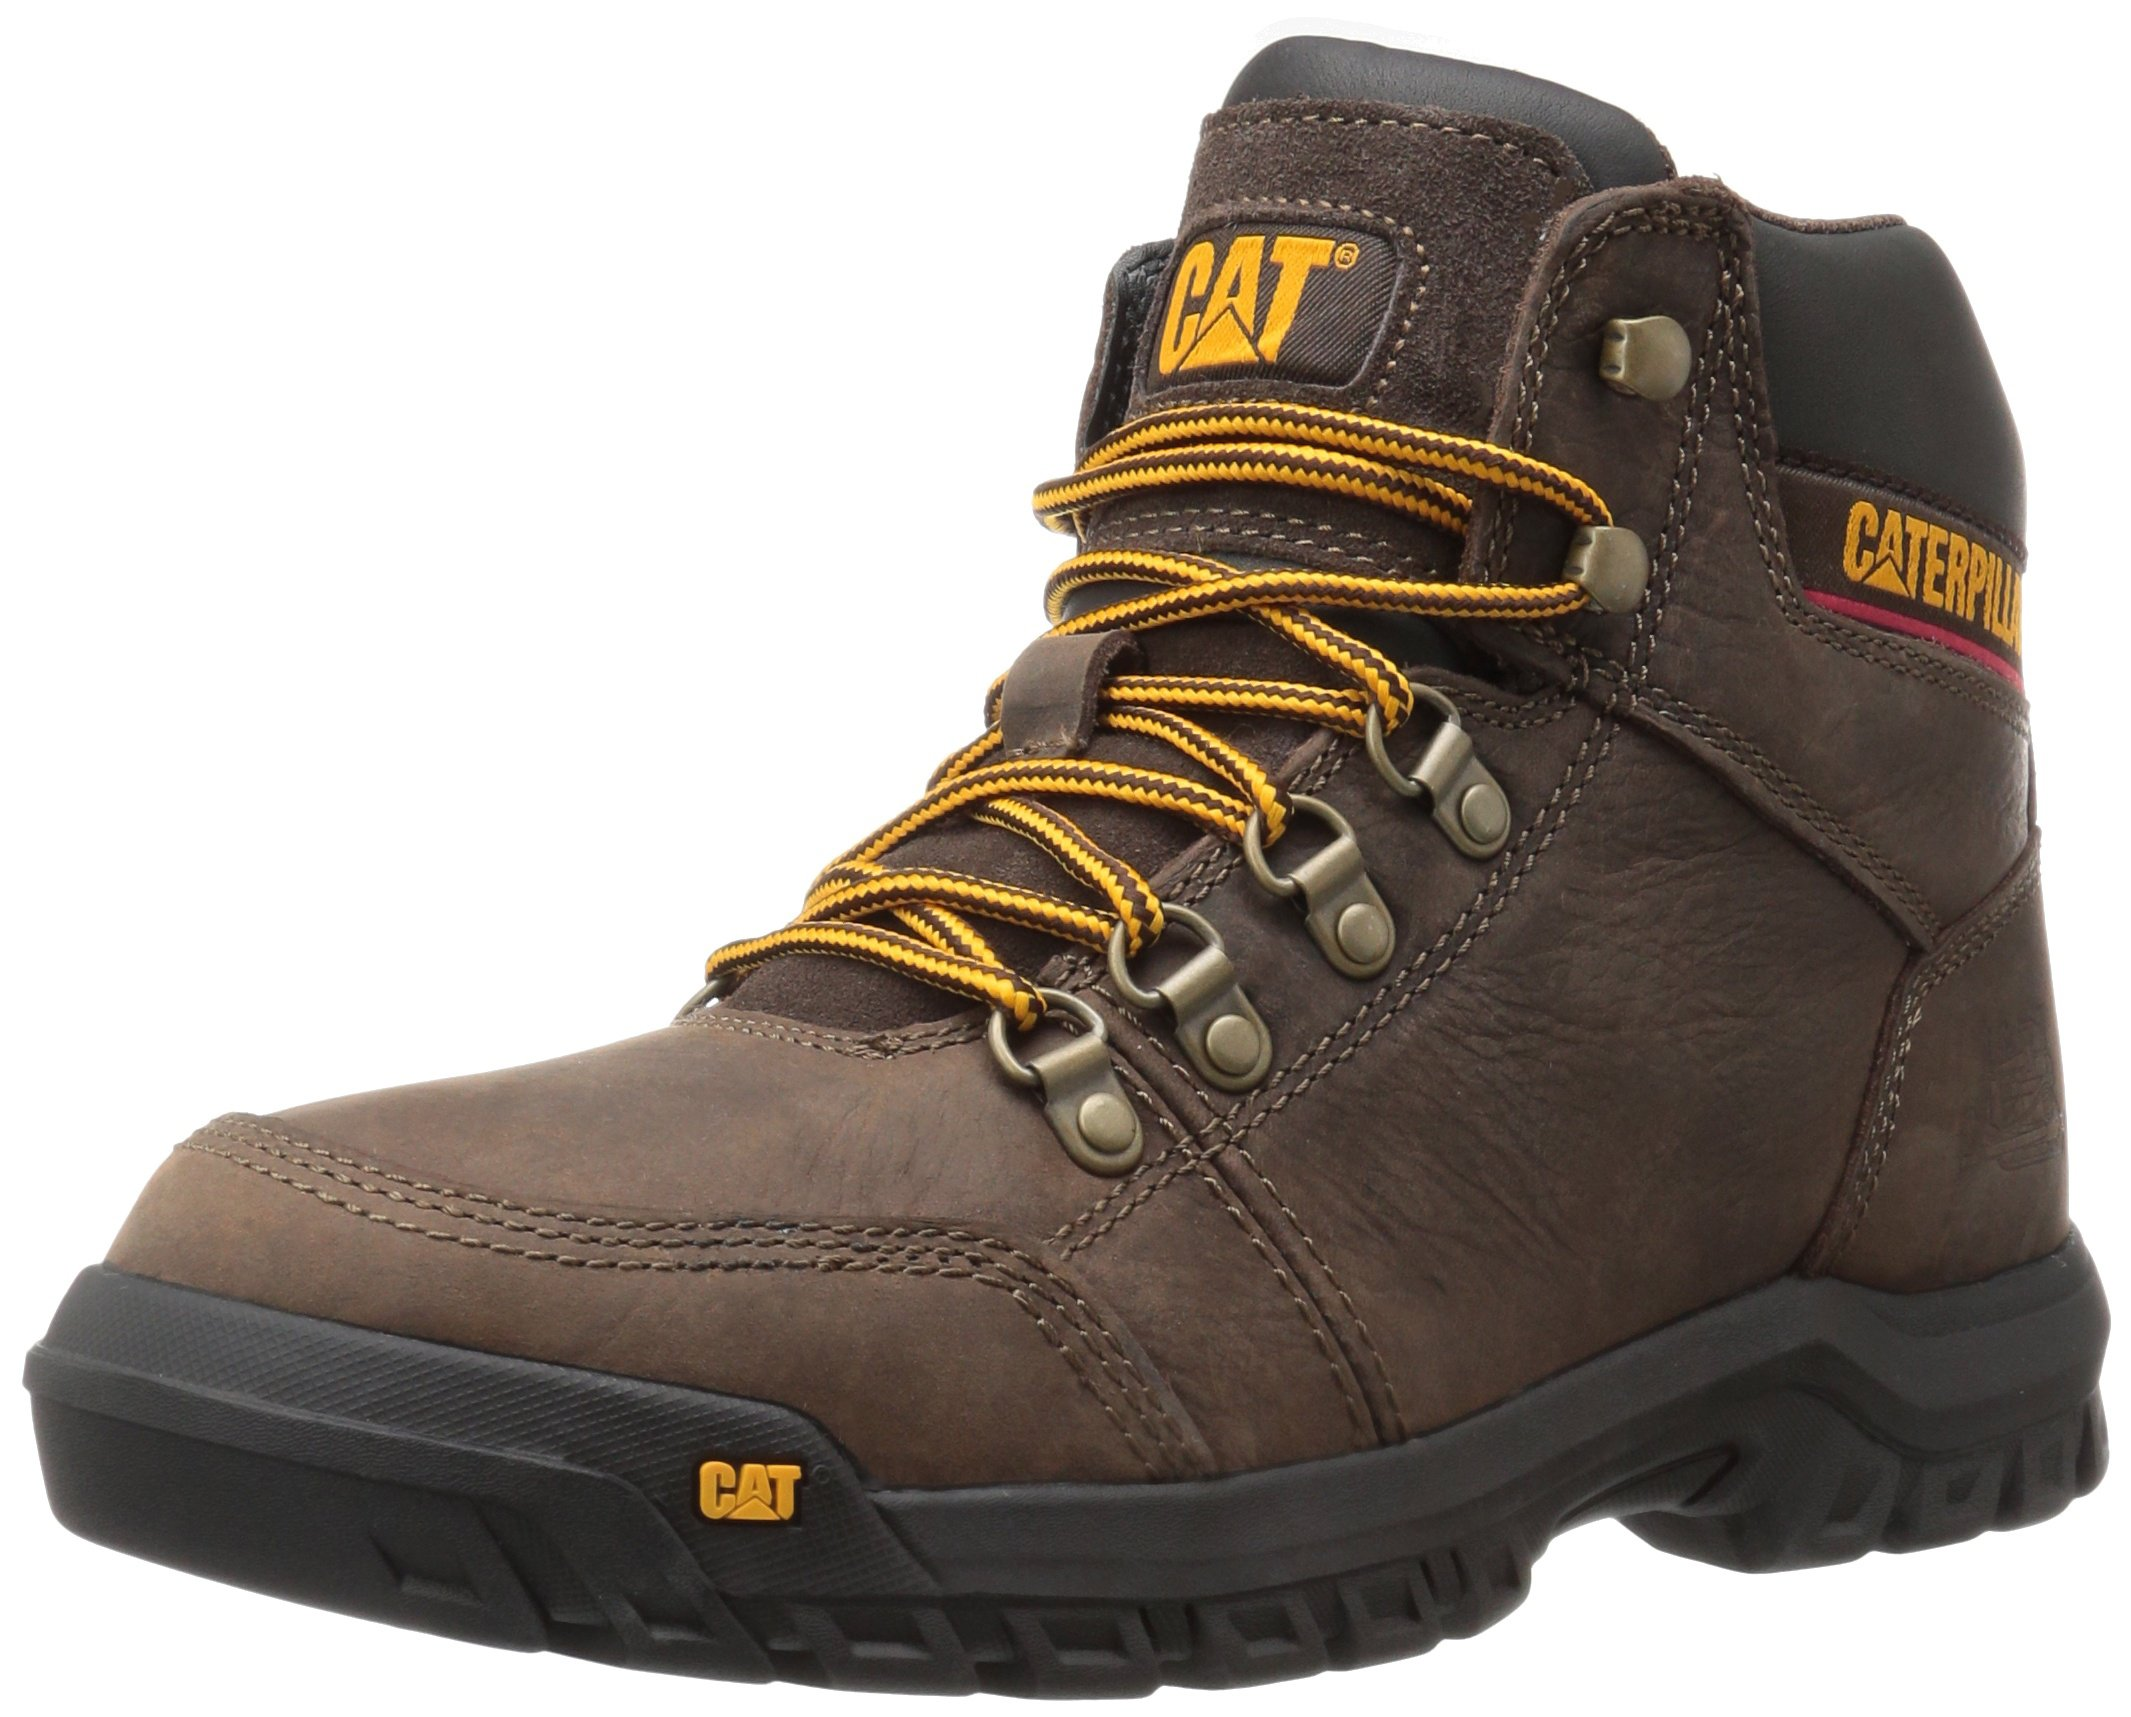 Caterpillar Men's Outline Work Boot, Seal Brown, 7.5 M US by Caterpillar